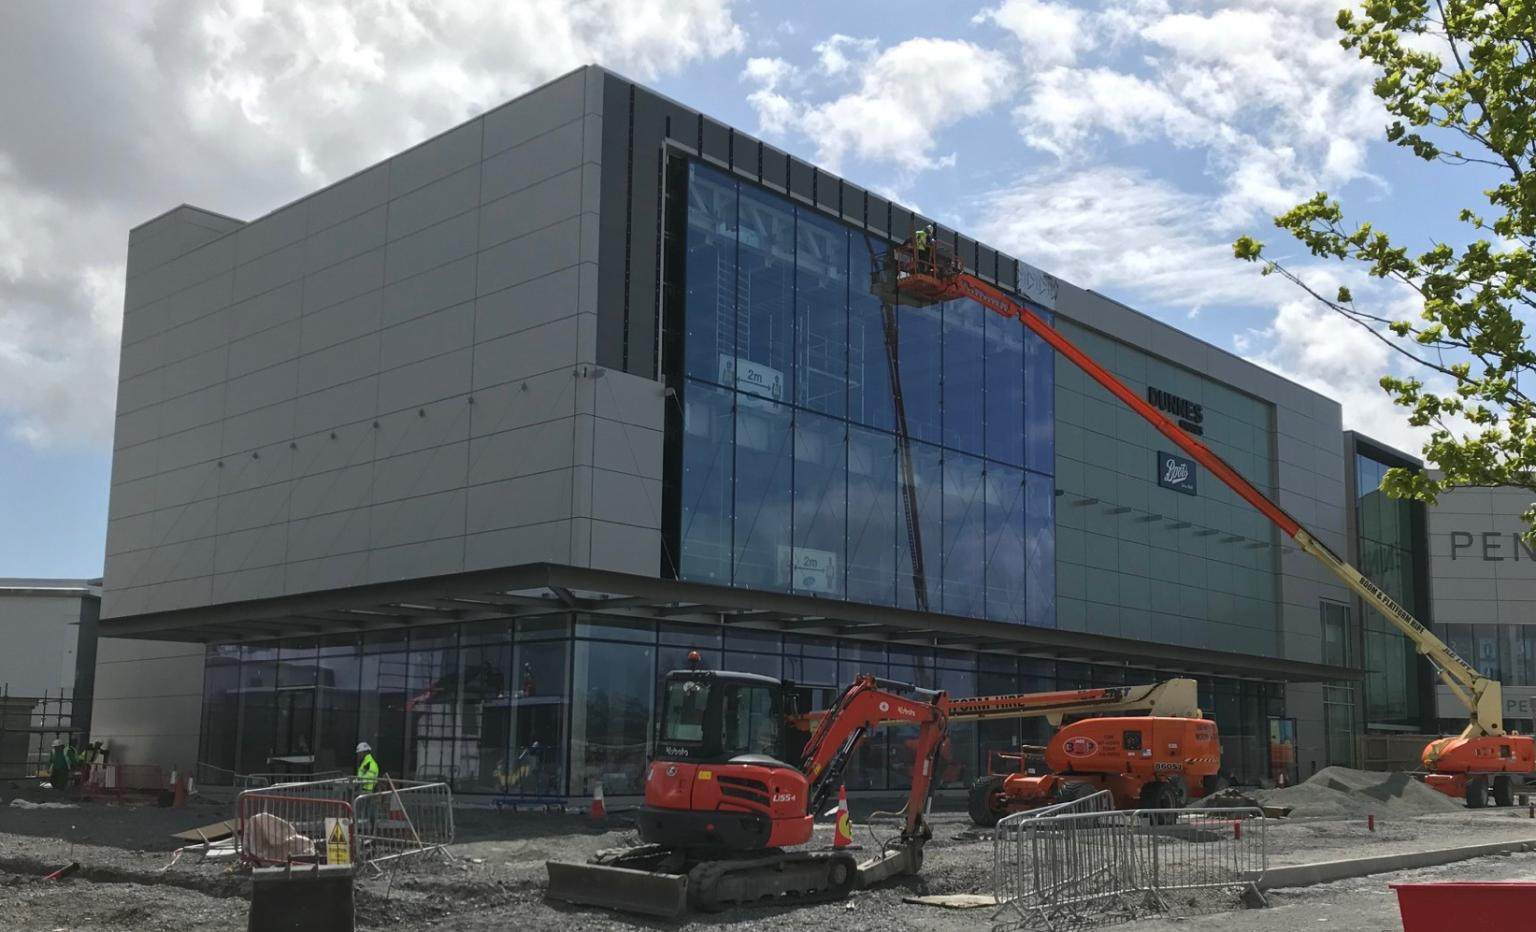 Pennys in Cork on Site